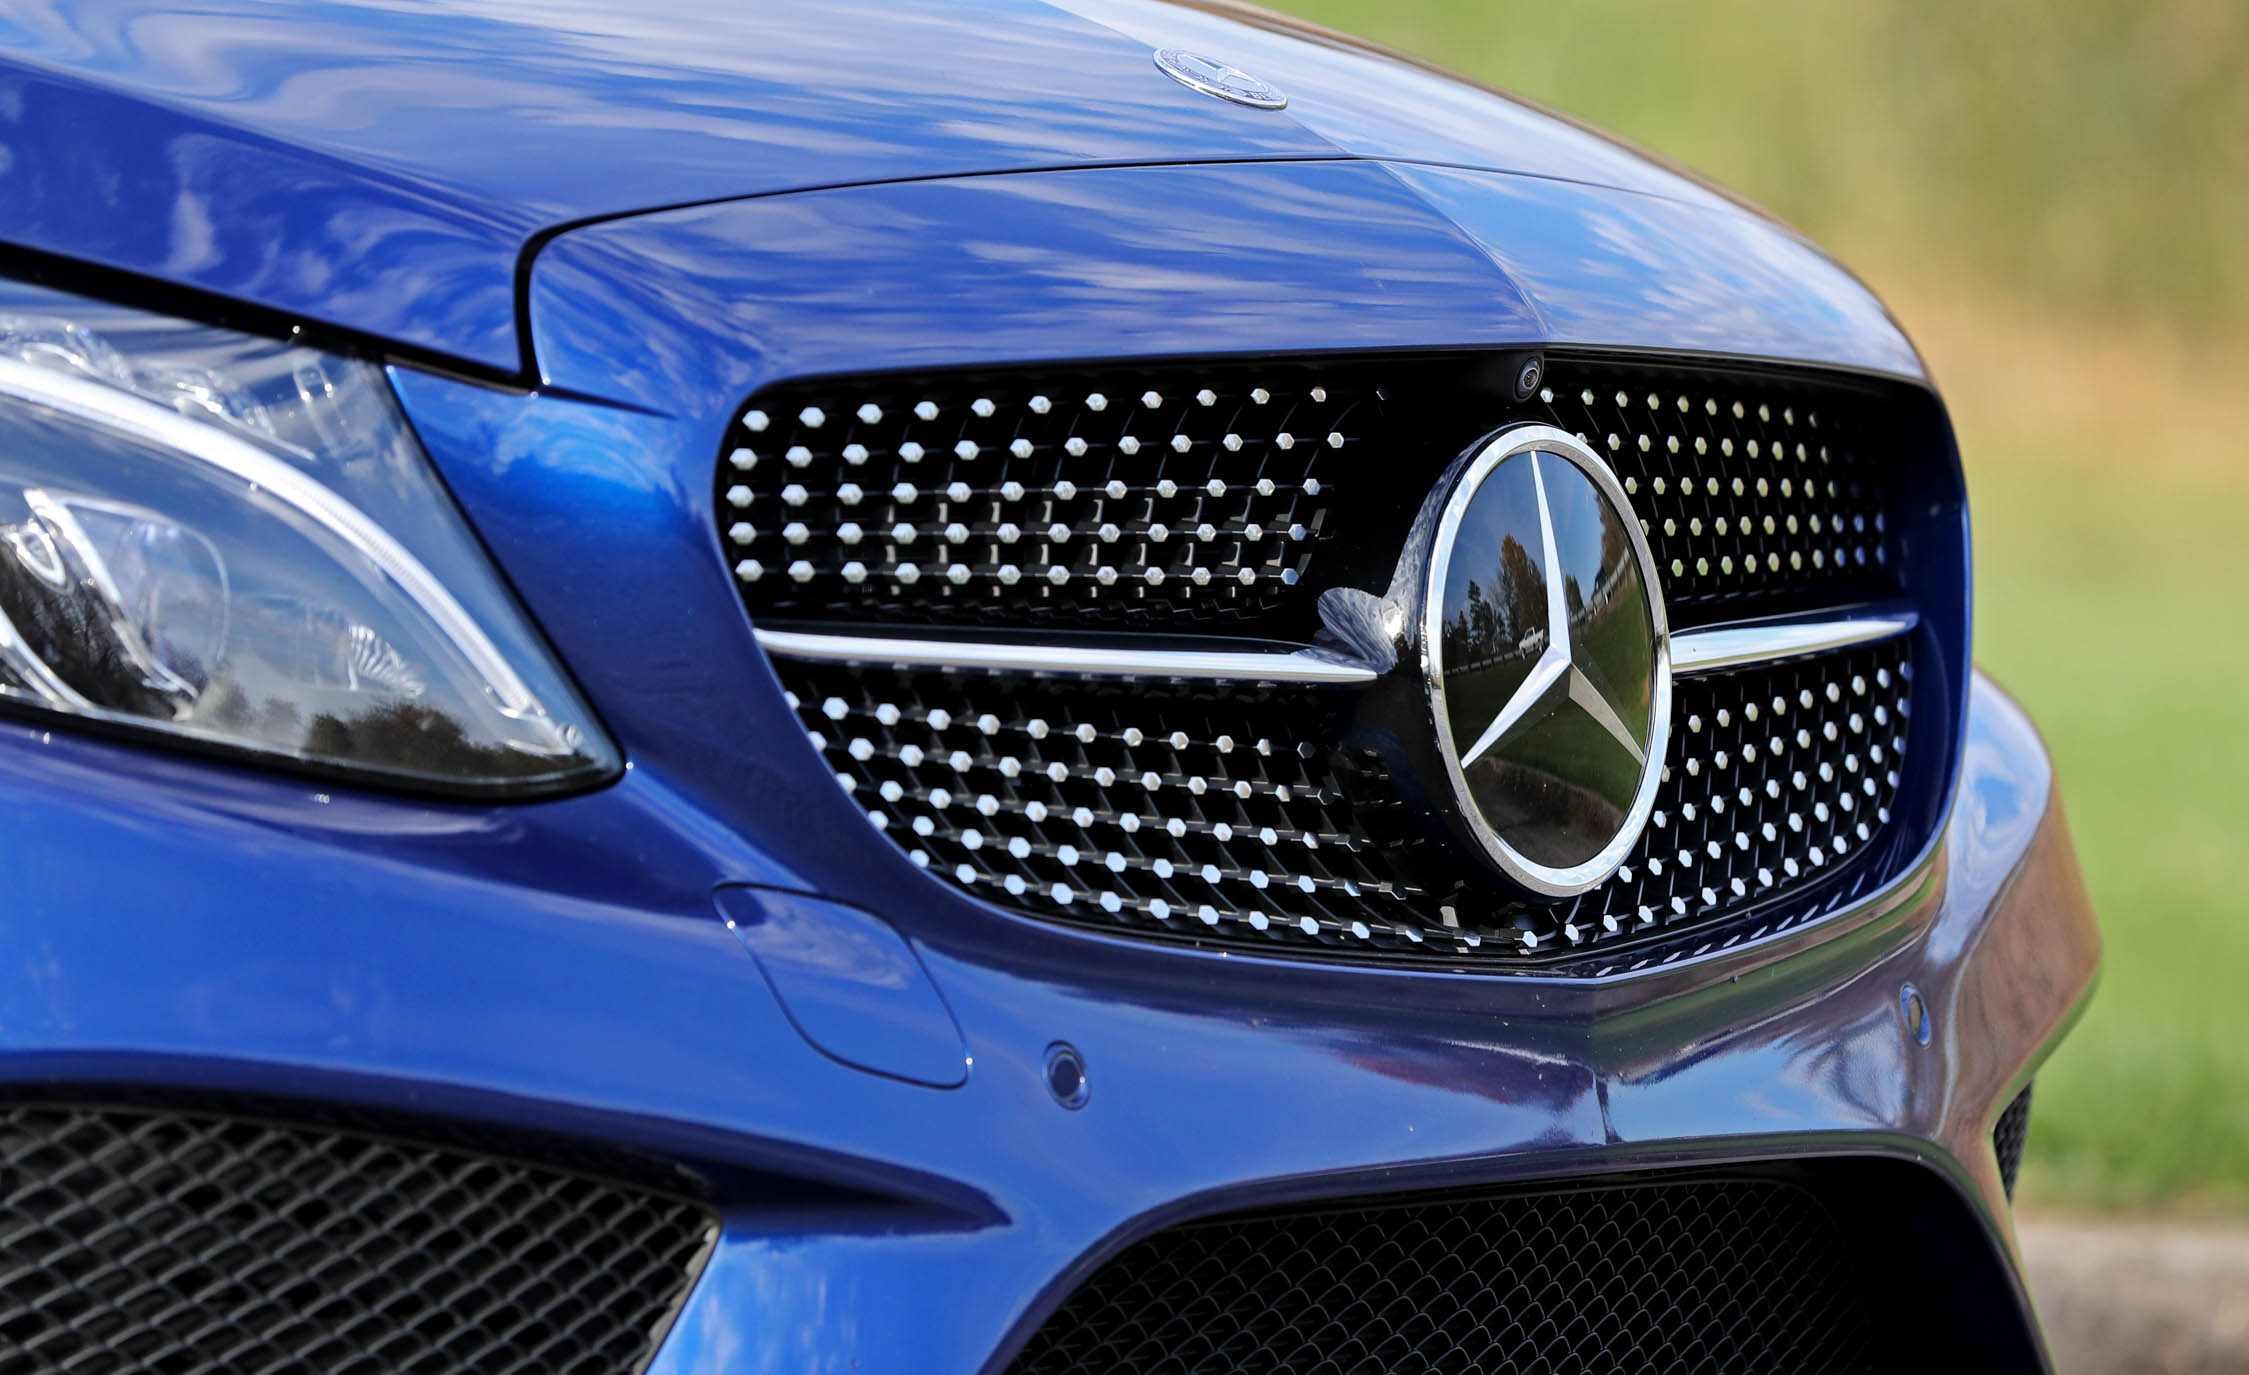 2017 Mercedes Benz C300 4MATIC Coupe Exterior View Grille And Badge (View 30 of 44)